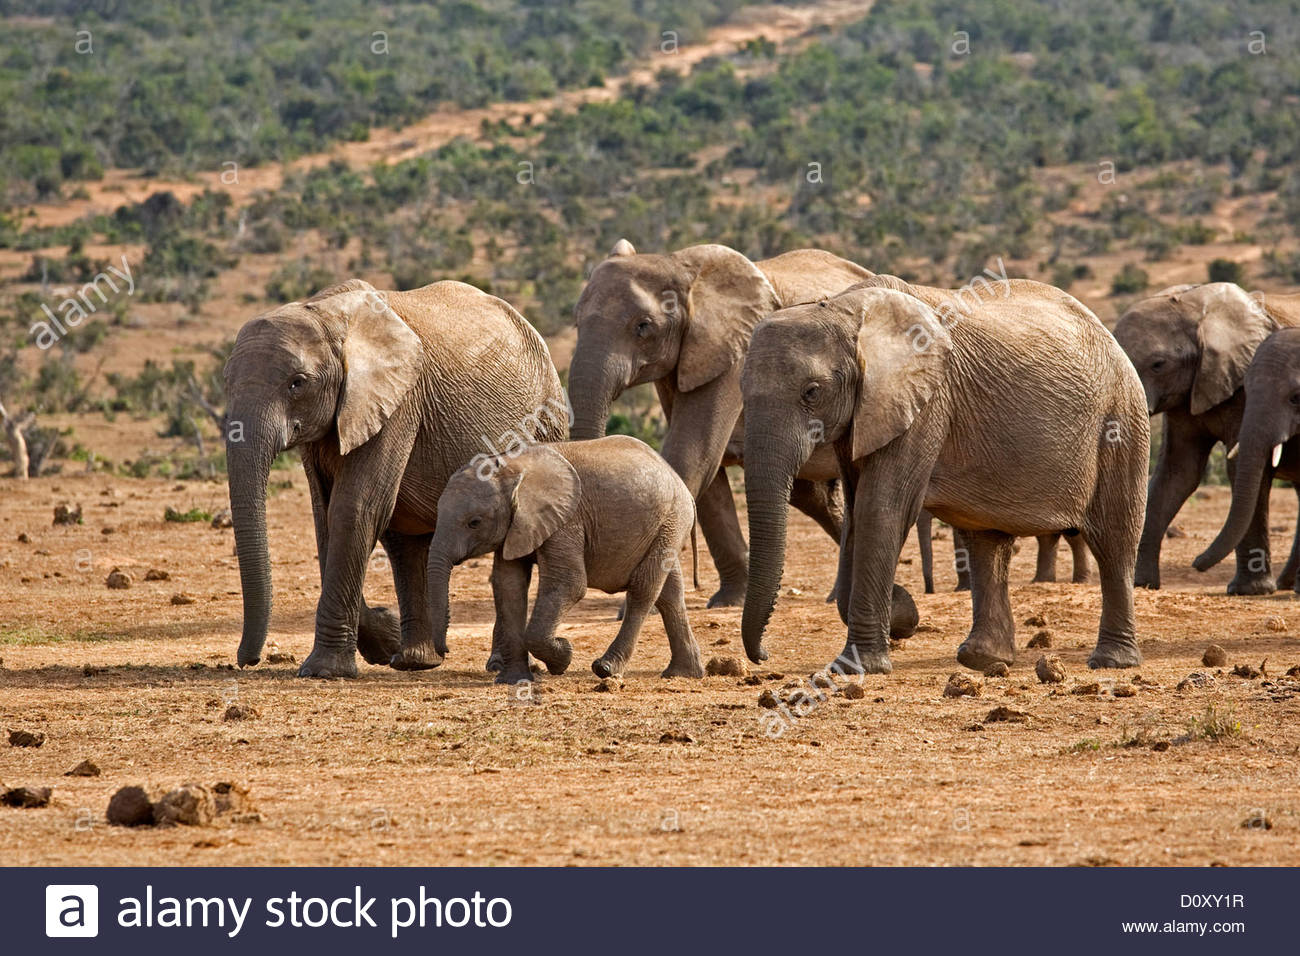 African Elephant (Loxodonta africana) herd with baby approaching waterhole, Addo Elephant National Park, South Africa - Stock Image